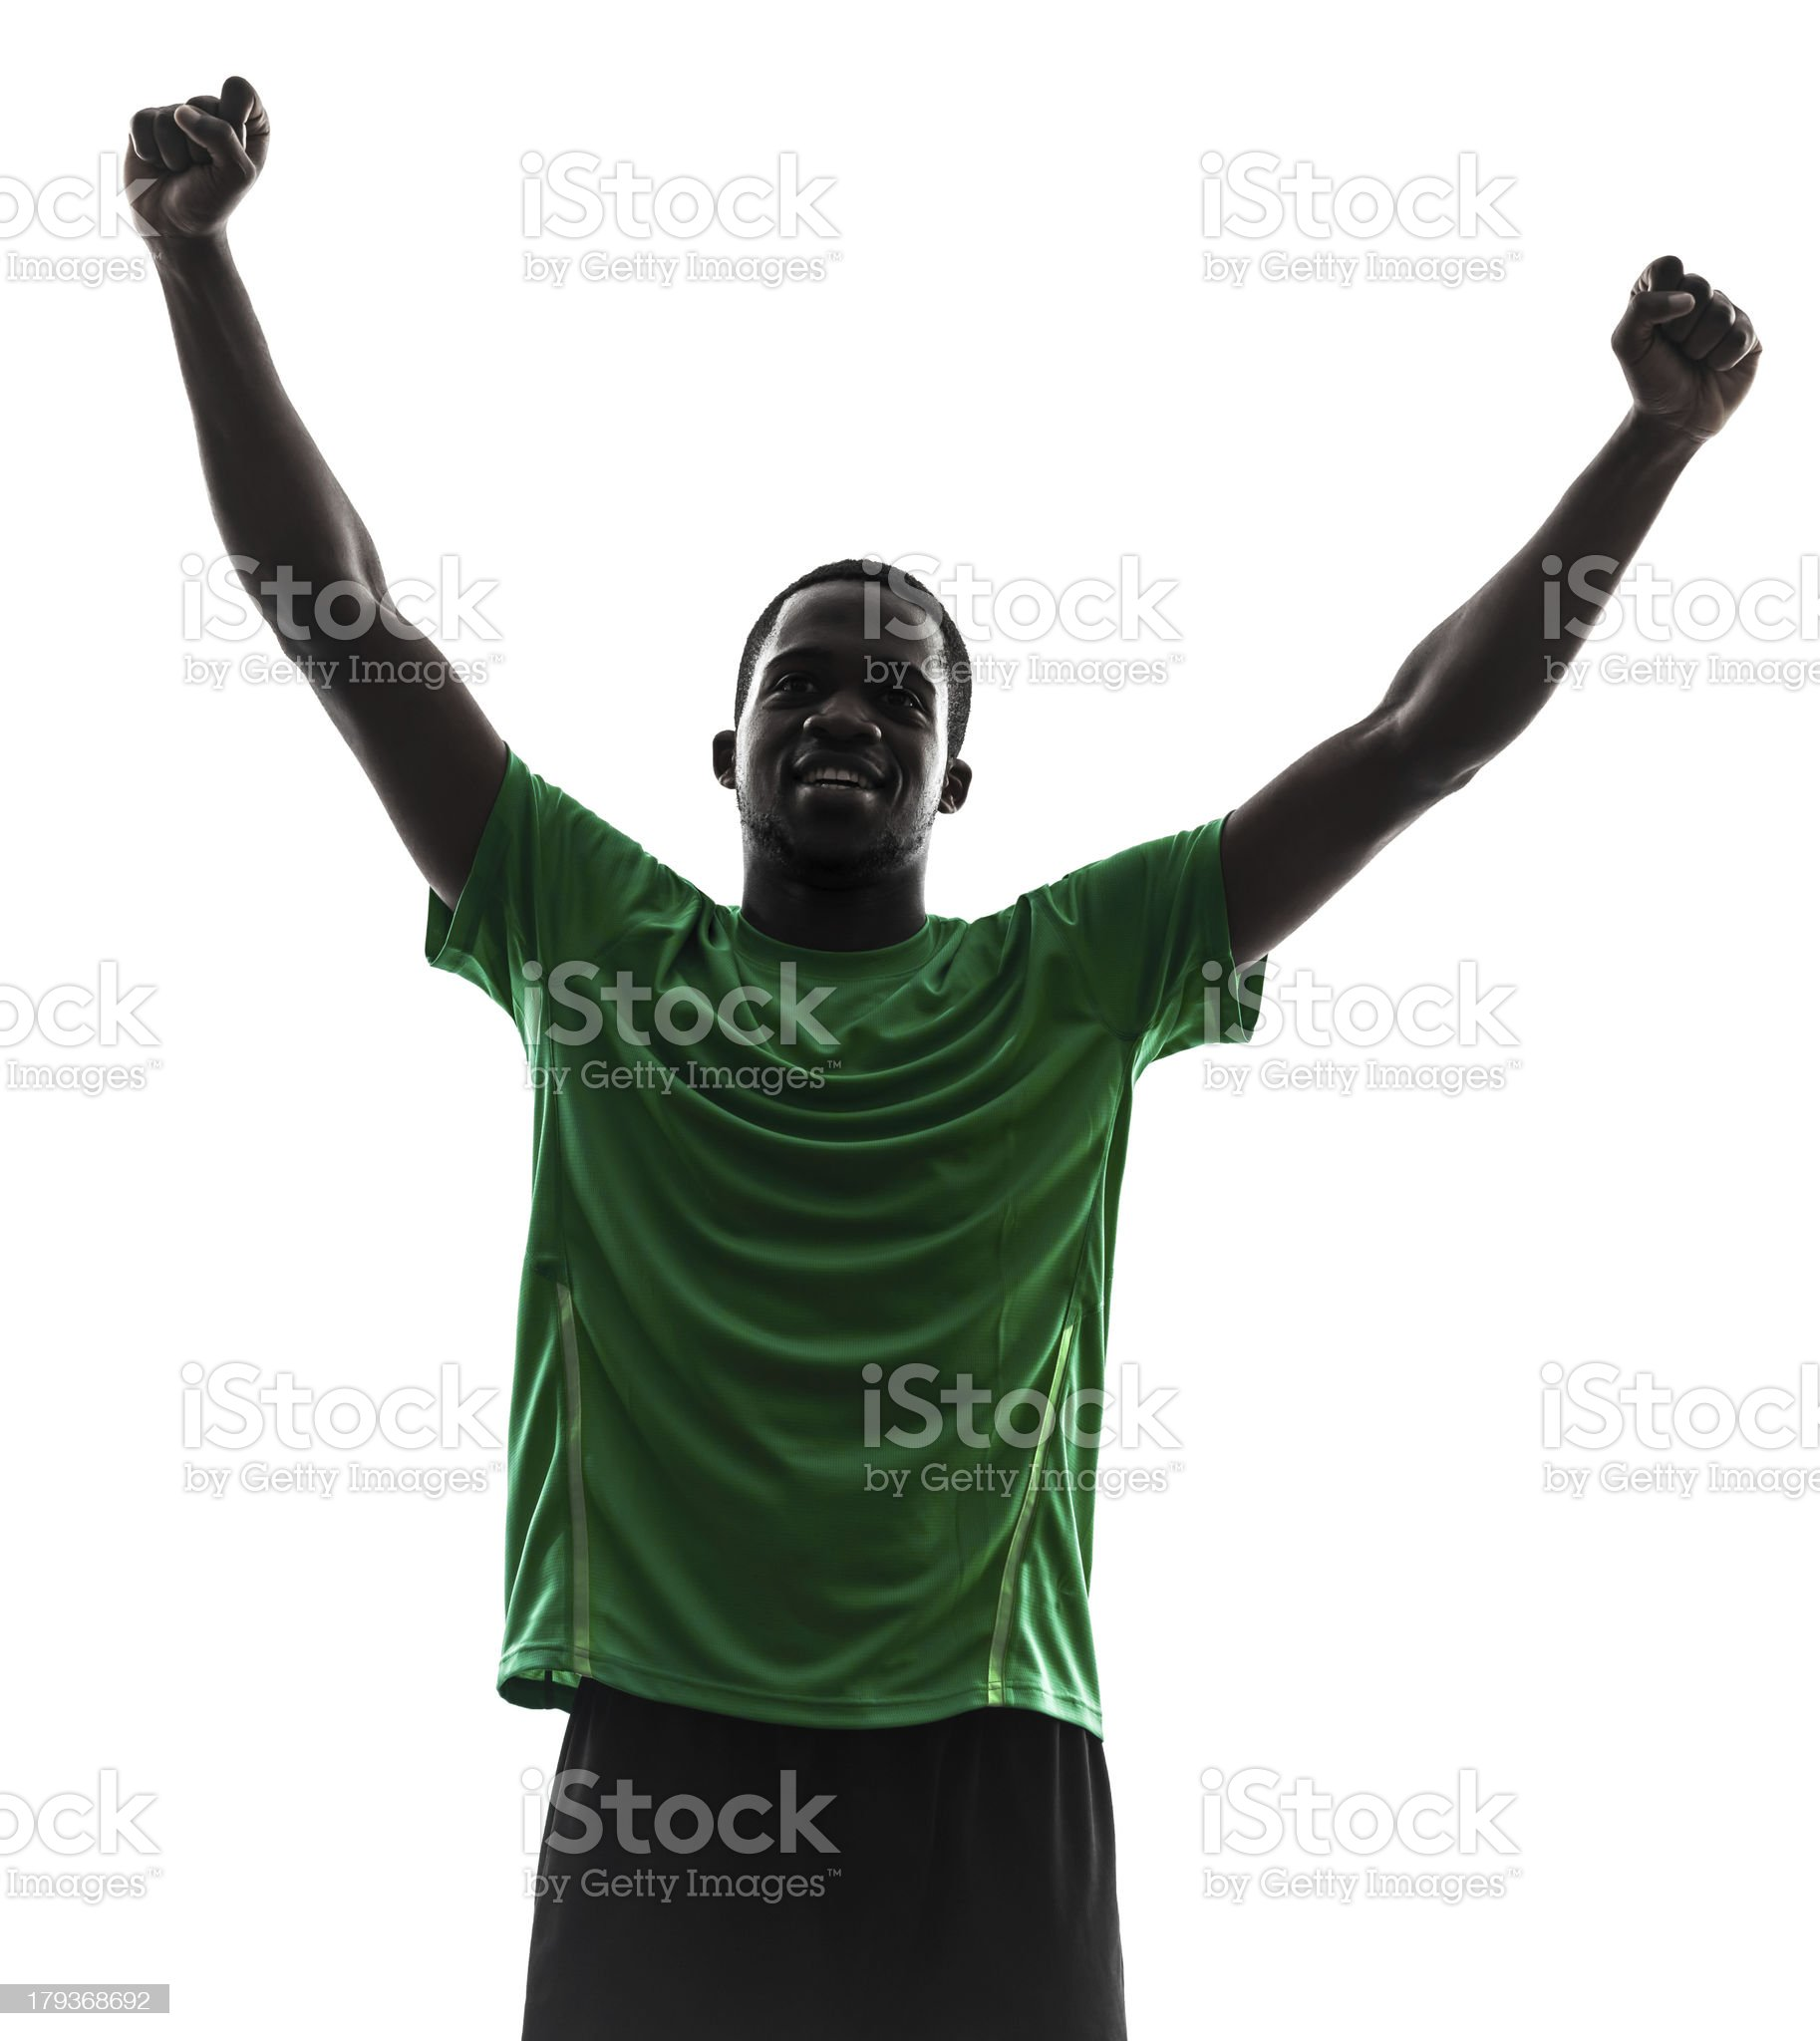 african man soccer player celebrating victory silhouette royalty-free stock photo